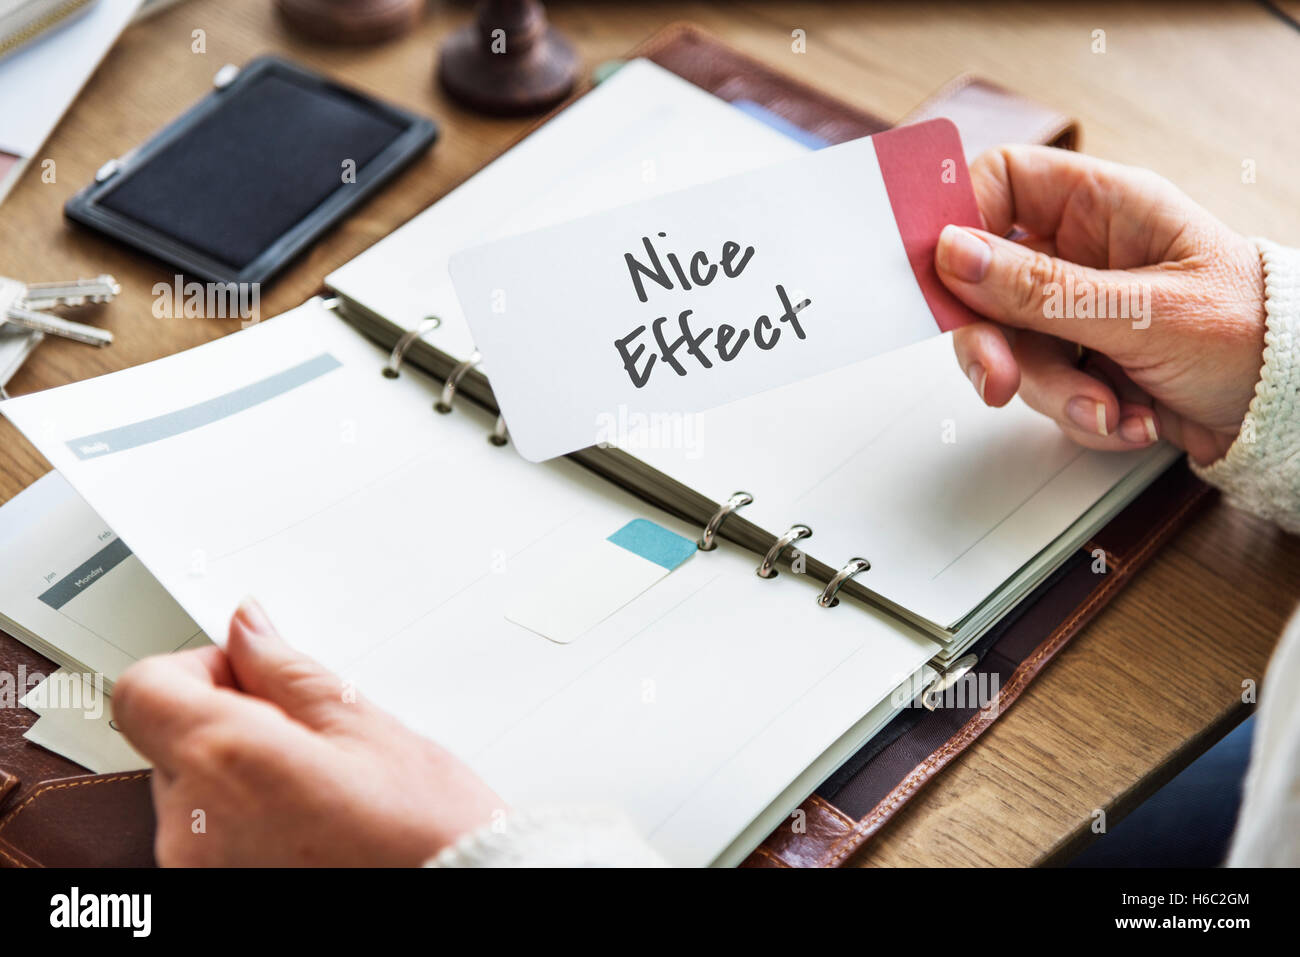 Nice Effect Well Done Concept - Stock Image